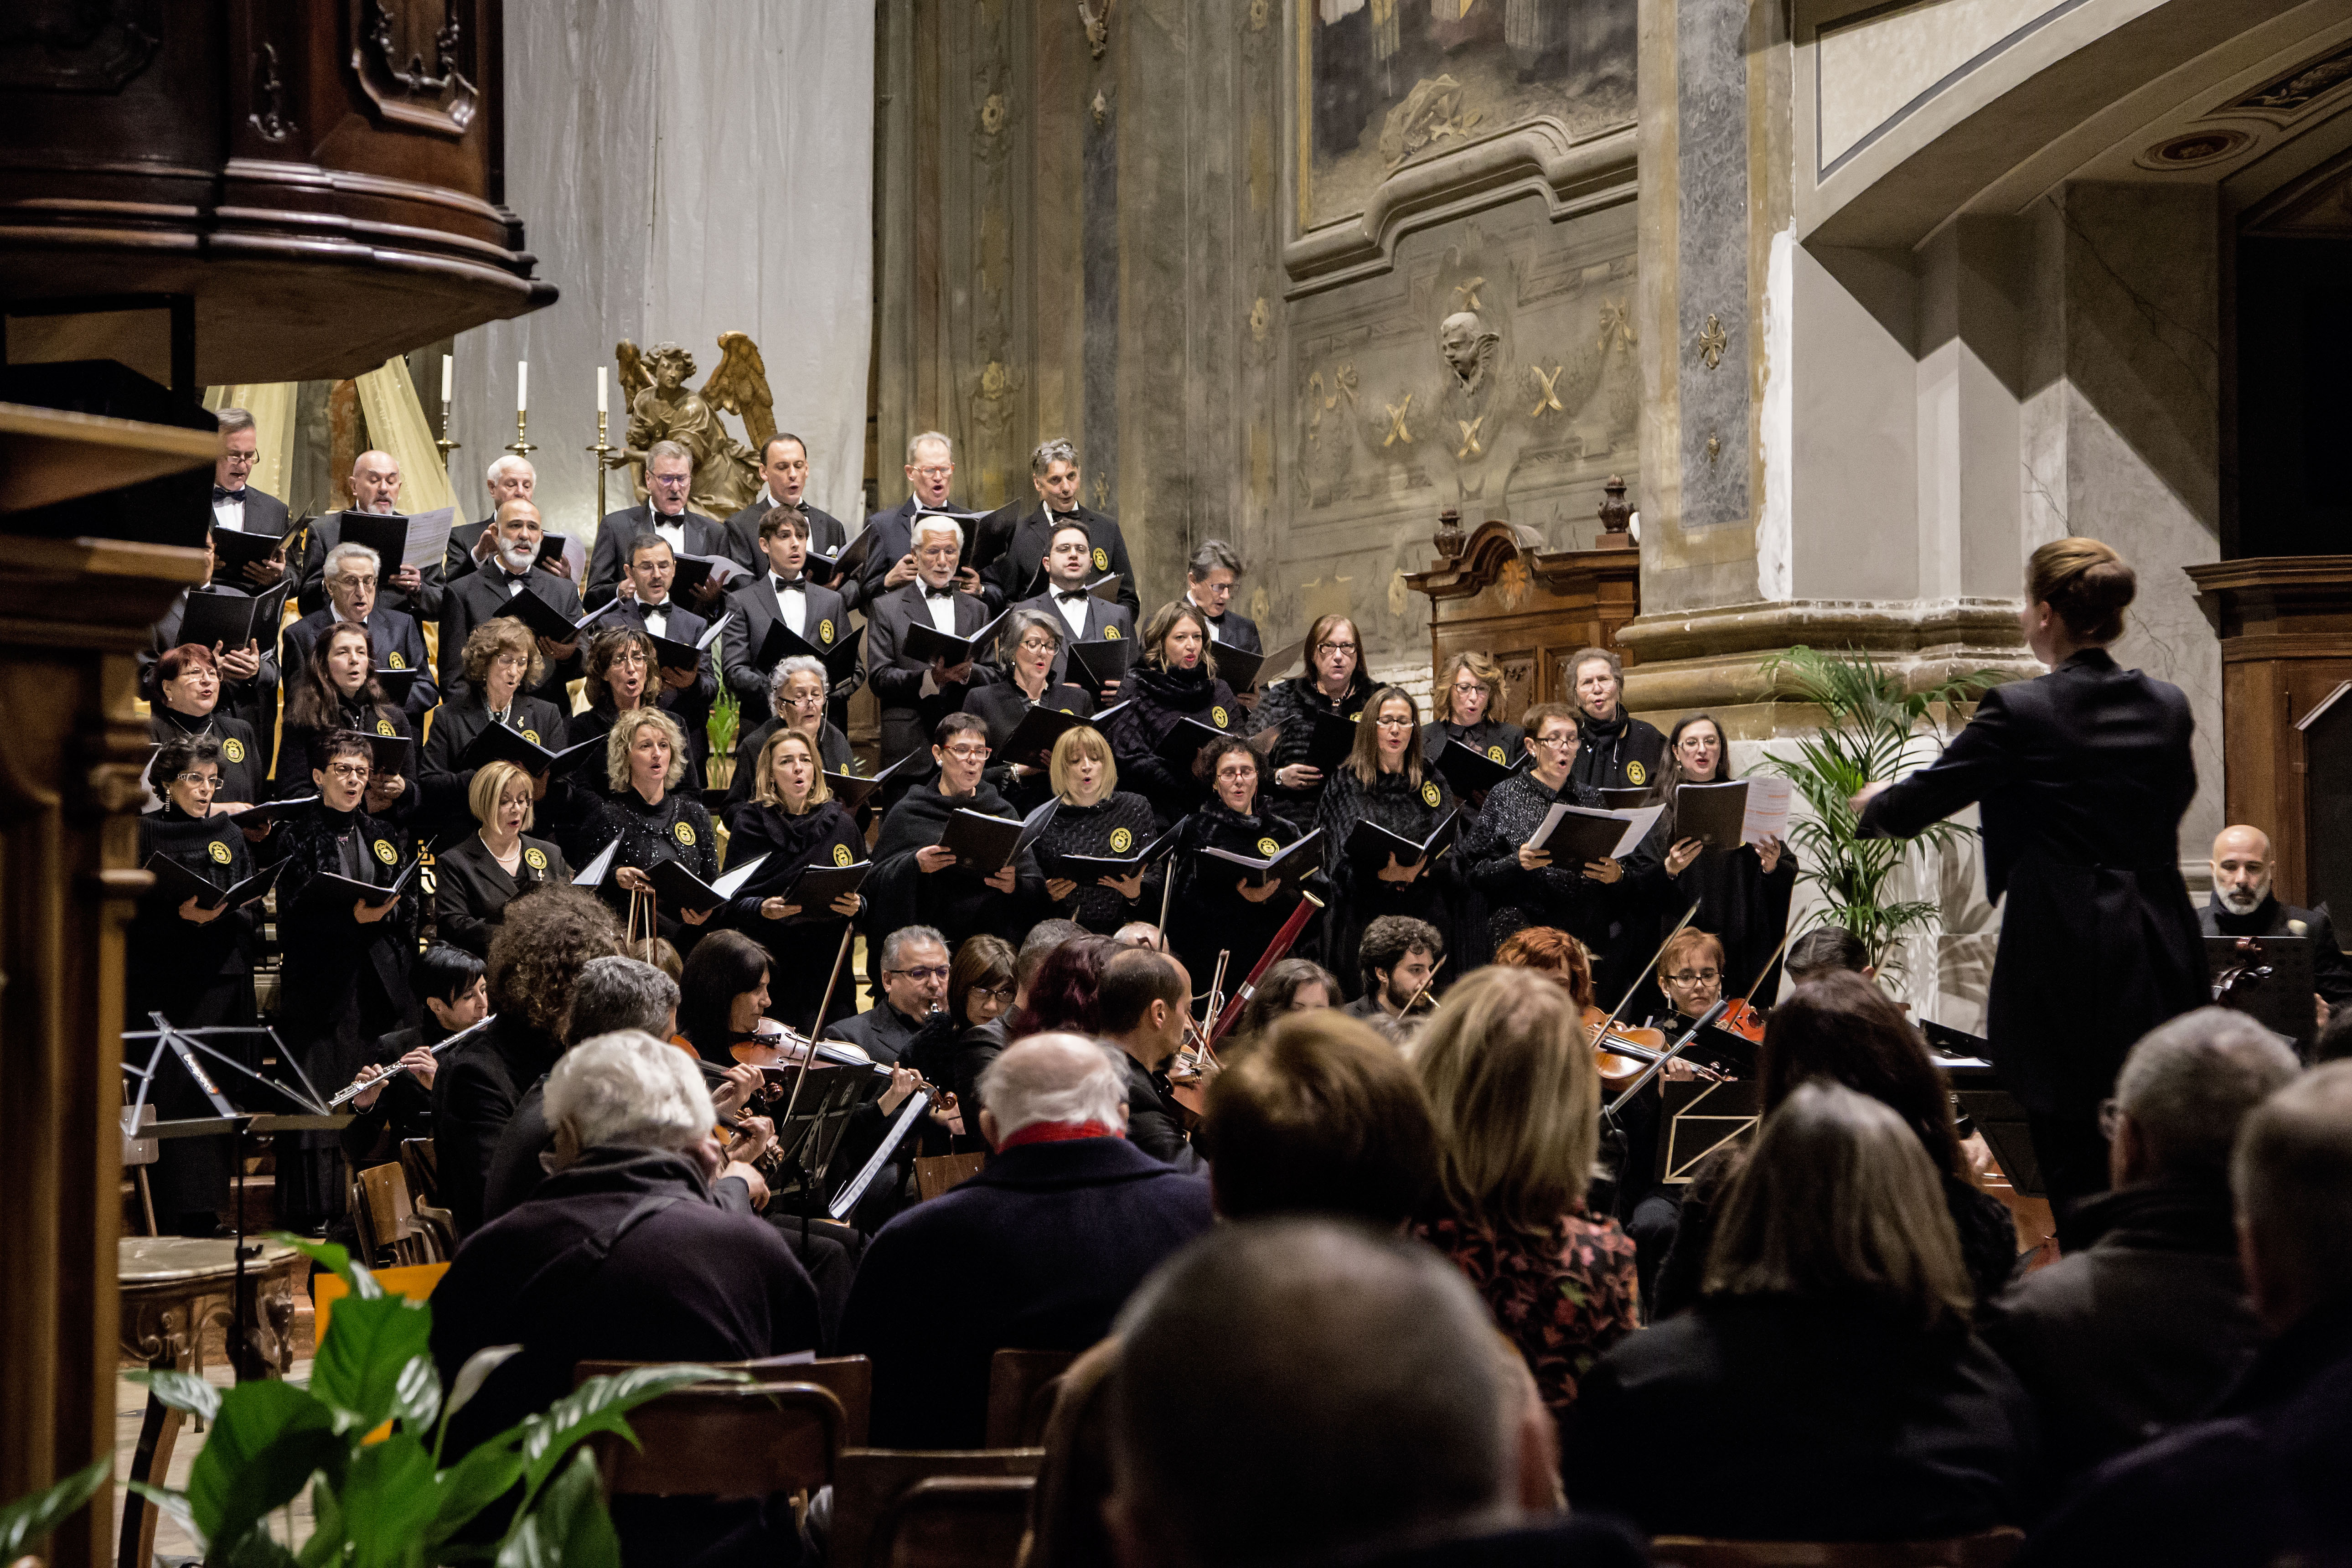 Concert with Polifonica Vogherese @ Duomo di Voghera